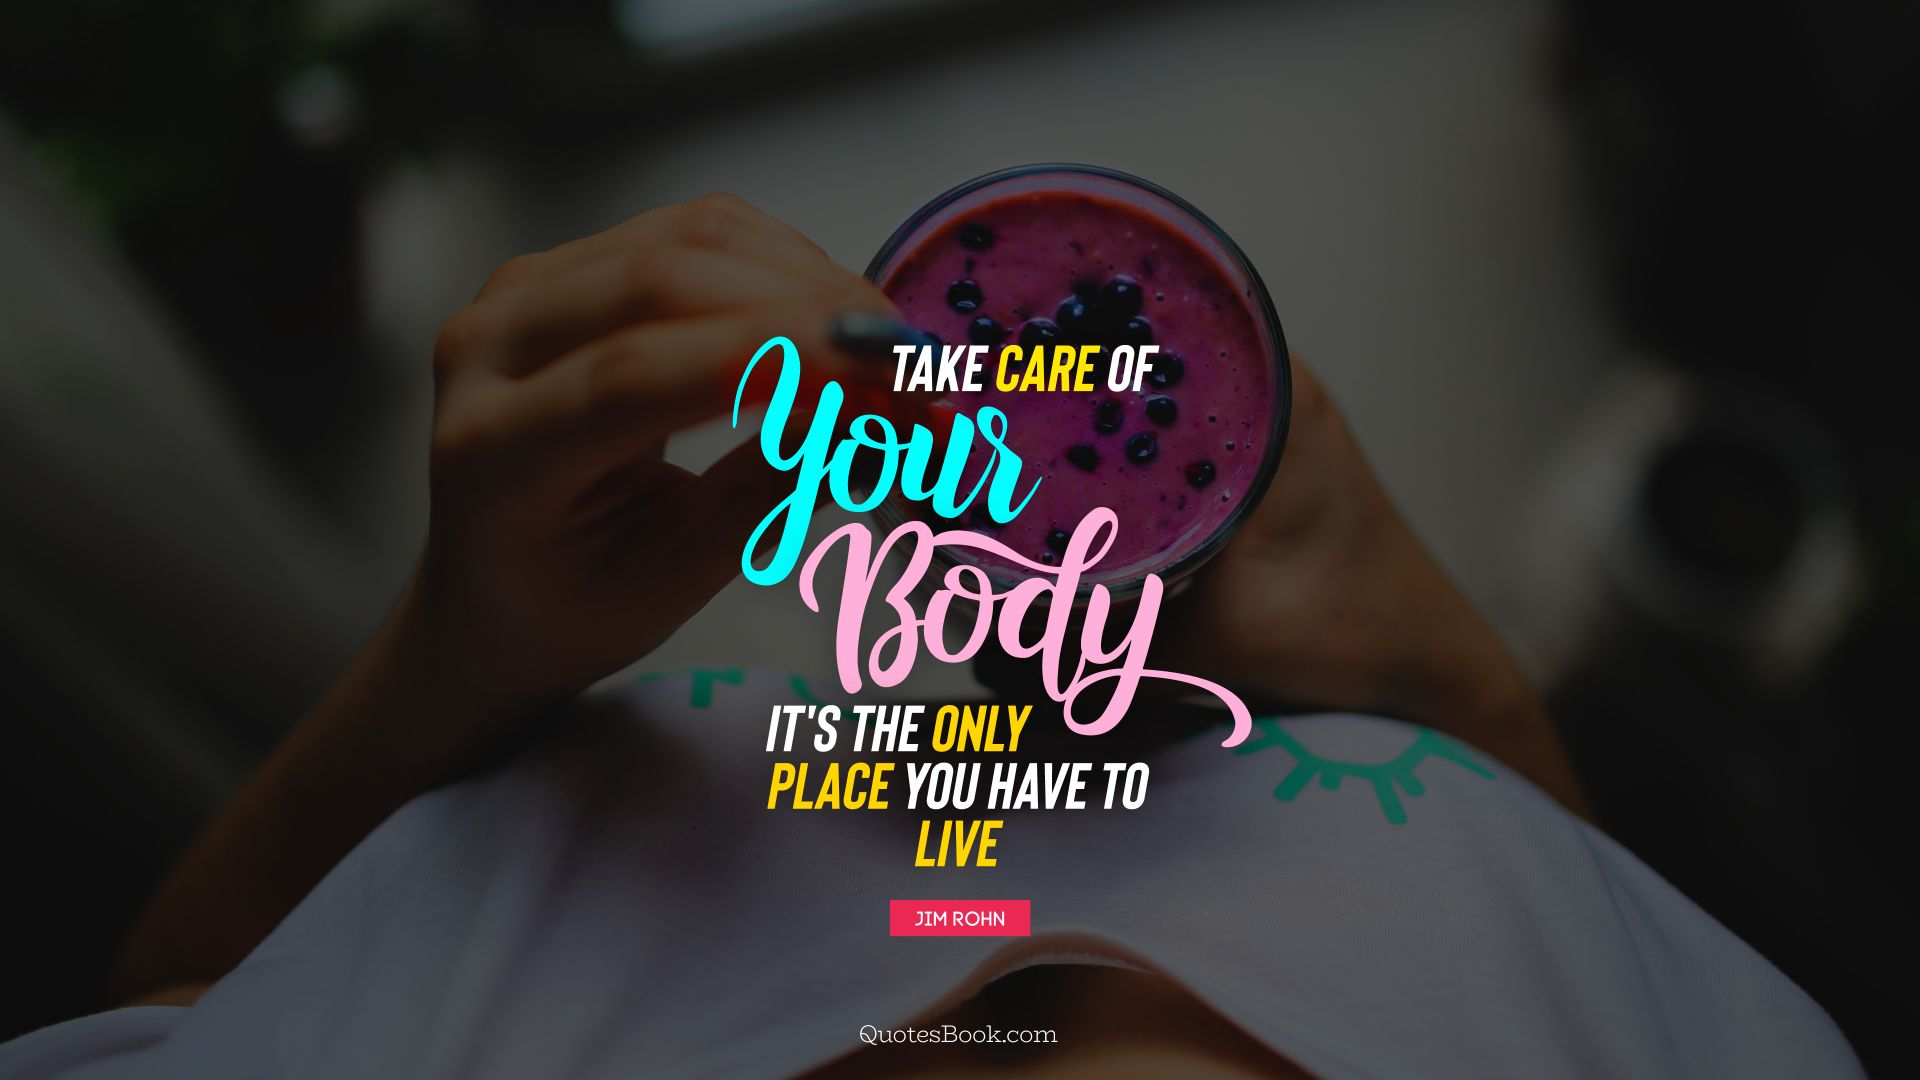 Take care of your body. It's the only place you have to live. - Quote by Jim Rohn